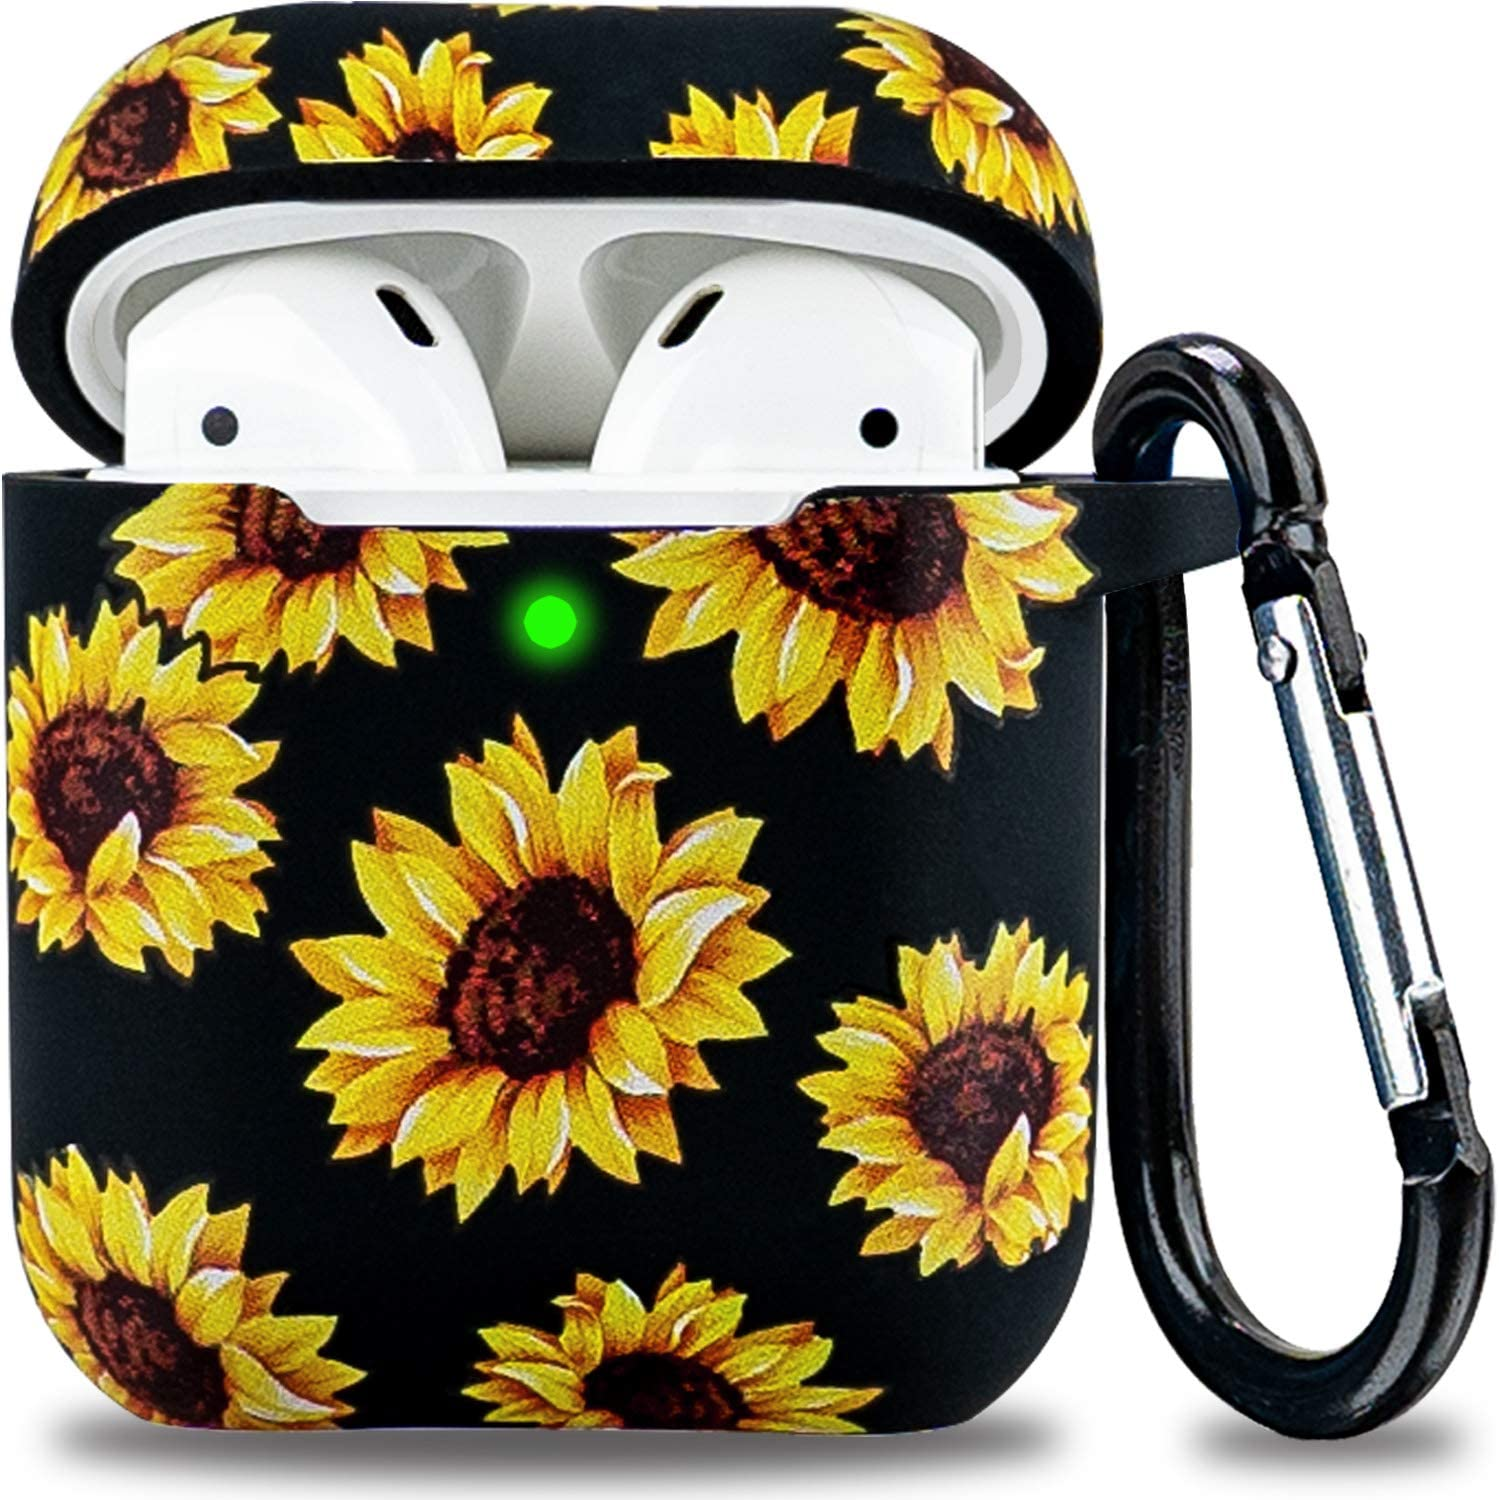 Airpod Case Soft Silicone Flower LitoDream Airpods Case Cover Girls Women Protective Flexible Skin with Keychain for Apple AirPods 2&1 Charging Case - Black/Sunflower